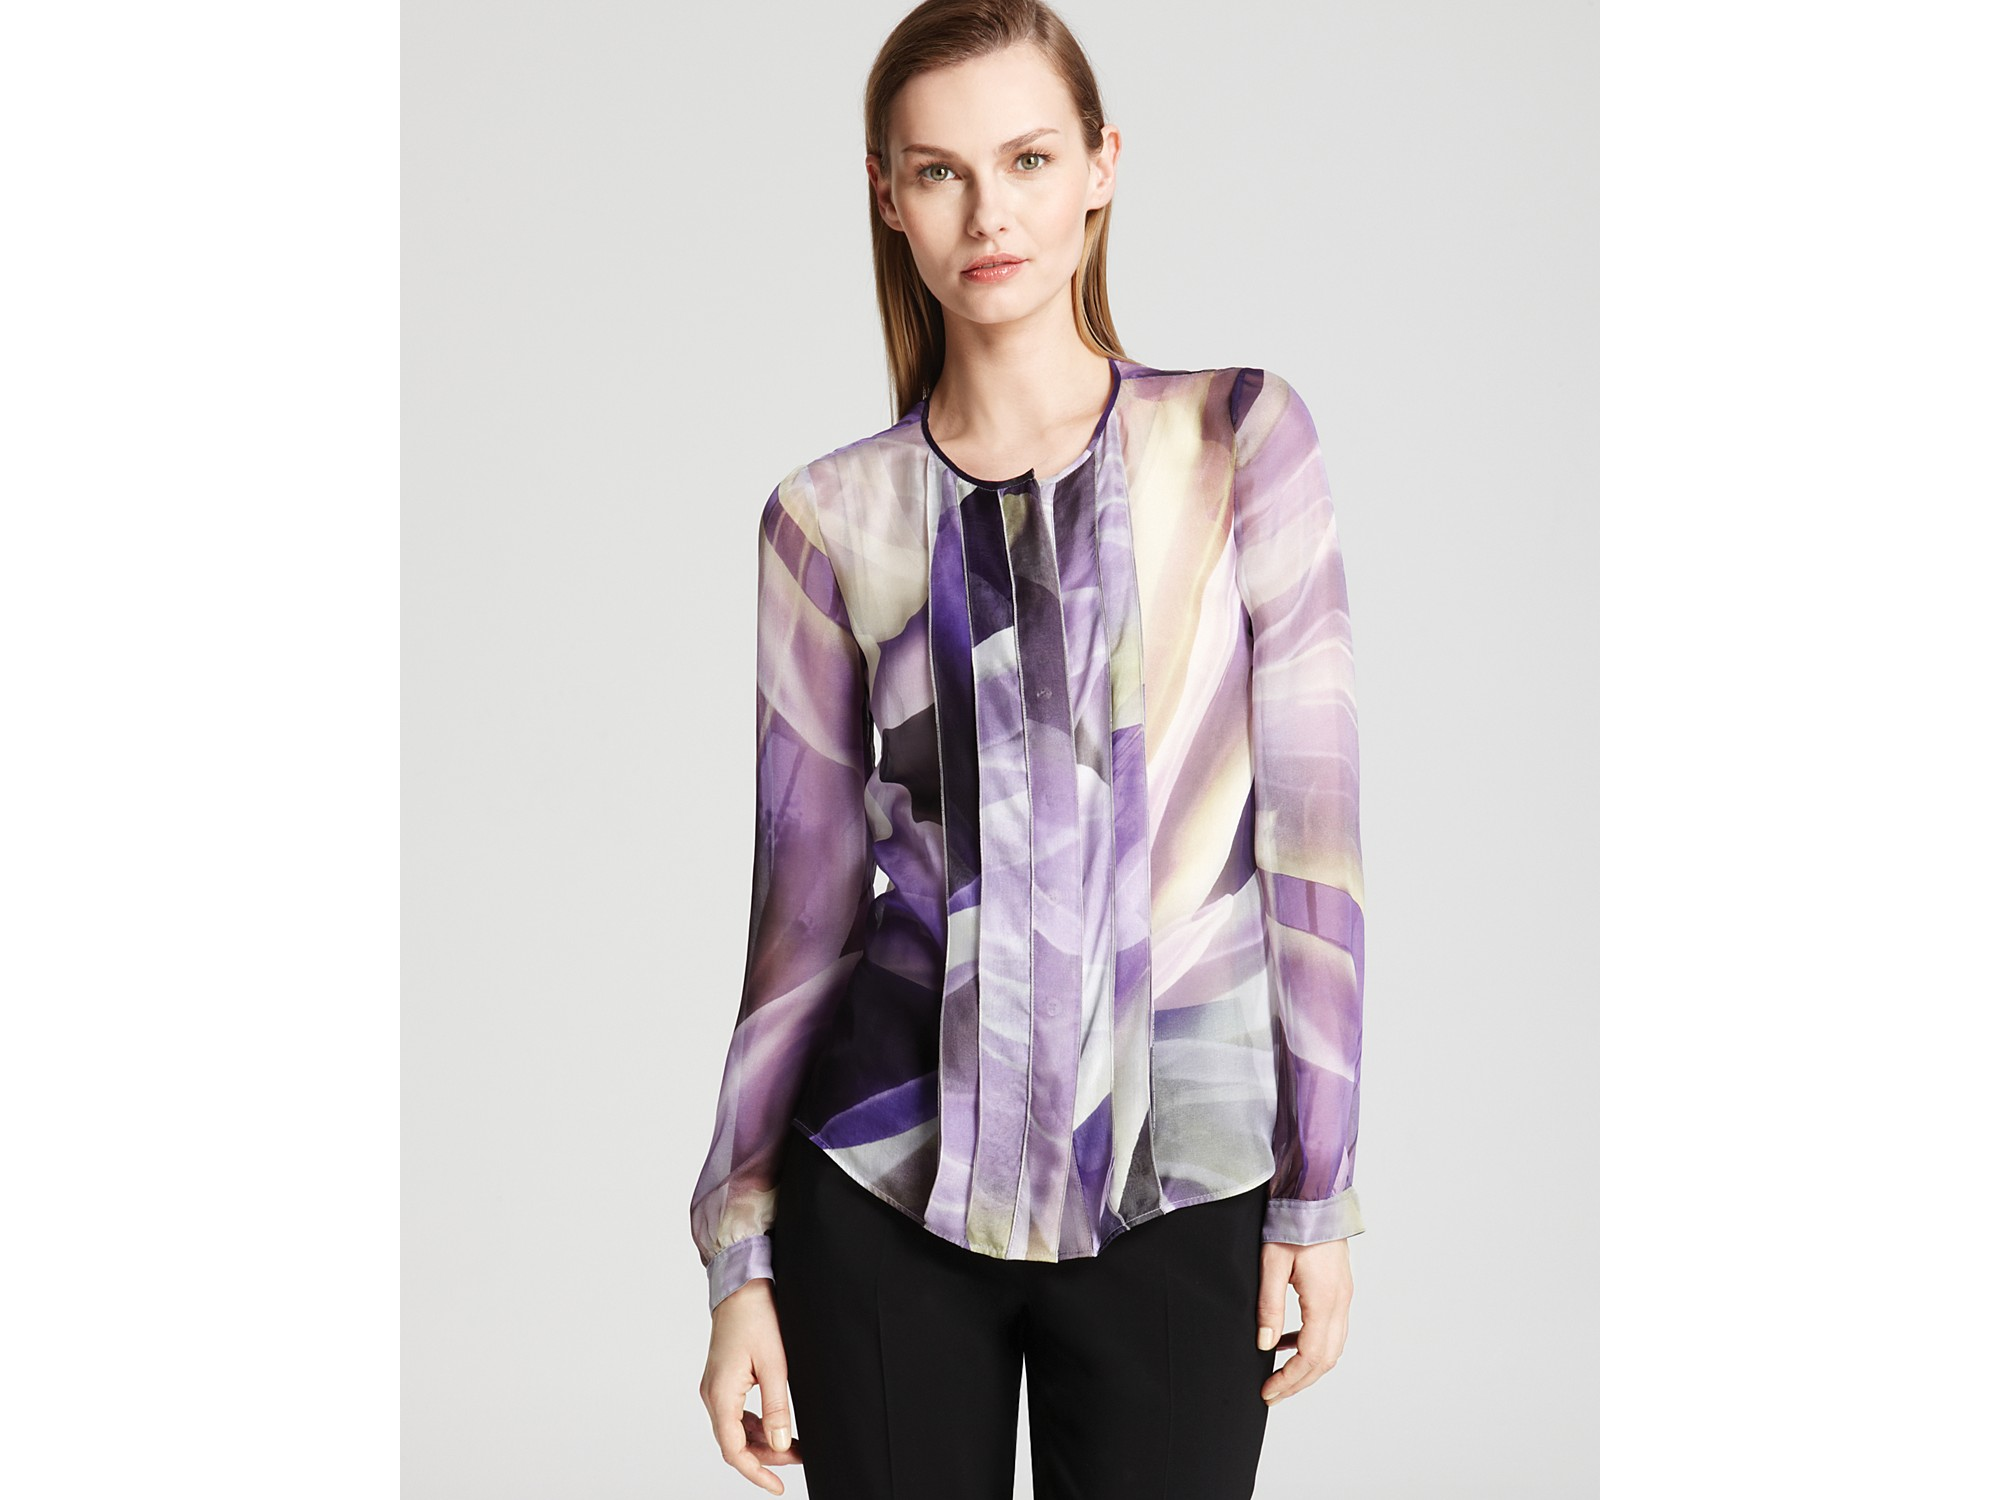 0c390dc9b32fd2 ... Lyst Armani Blouse Abstract Lily with Bow Tie in Purple Gallery Source  · Elegant ladies long sleeve shirt autumn white purple bow tie chiffon